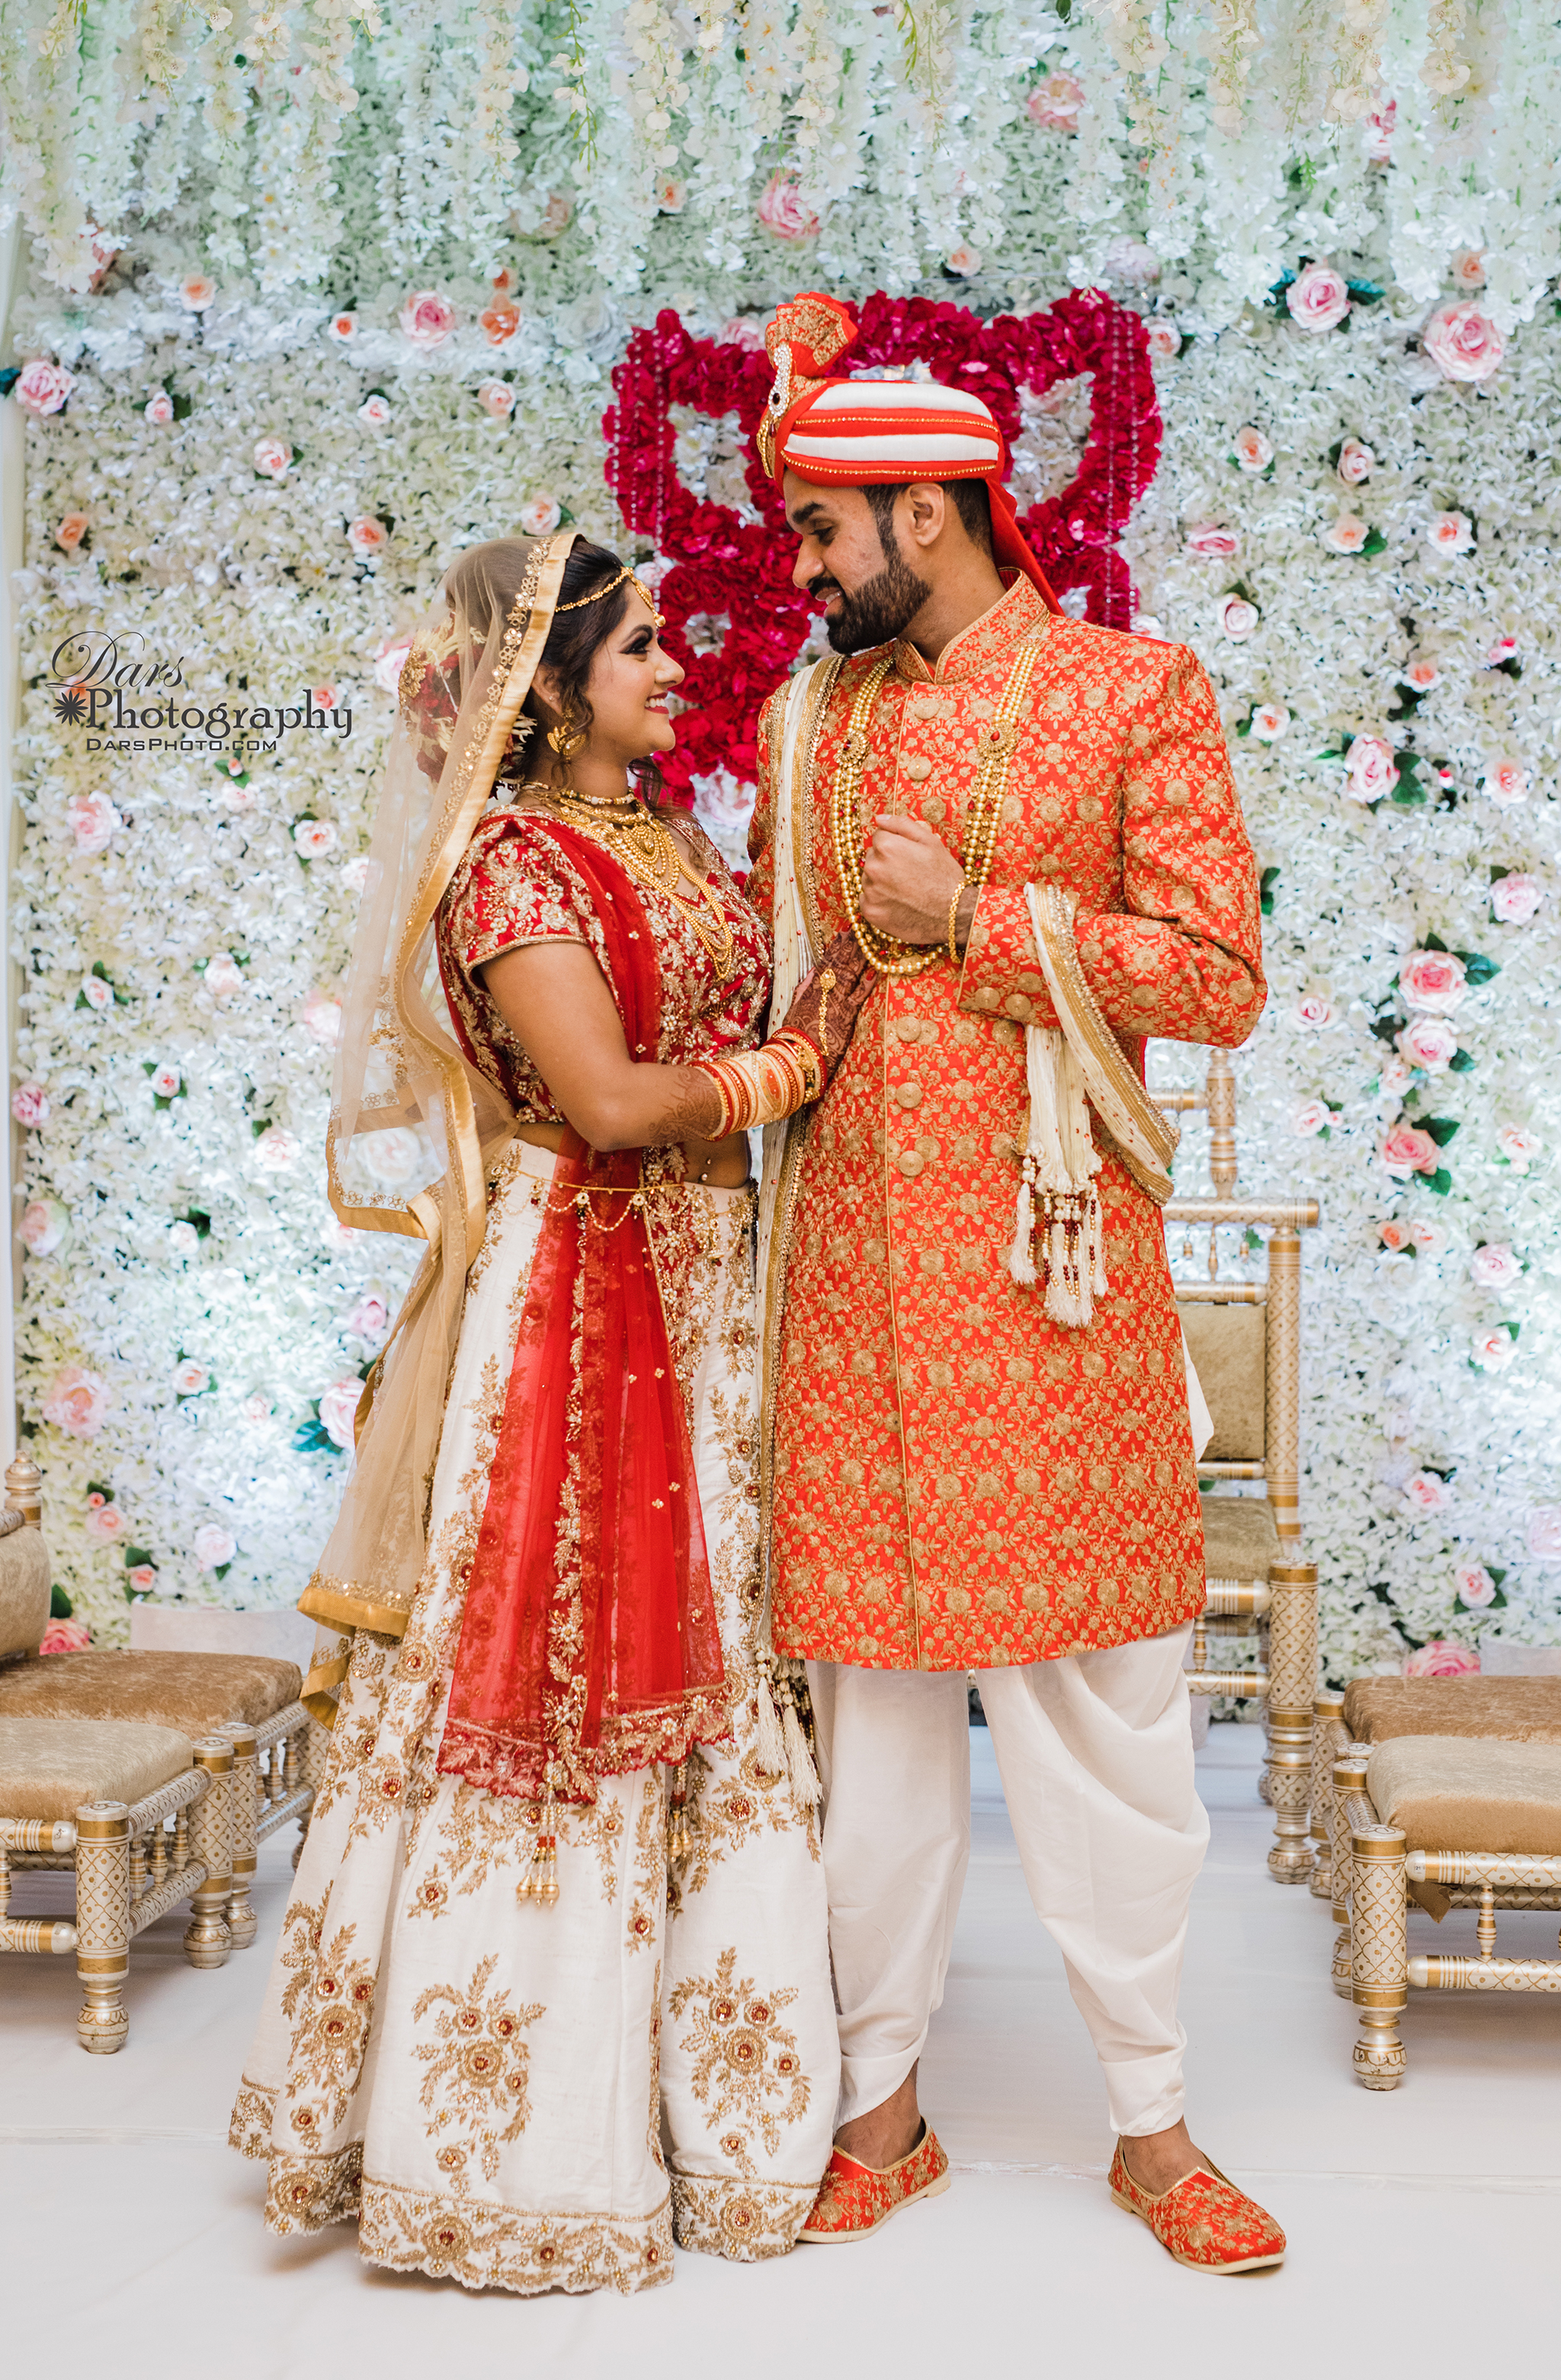 Indian Wedding Photography 1 (18) – DARS Photography